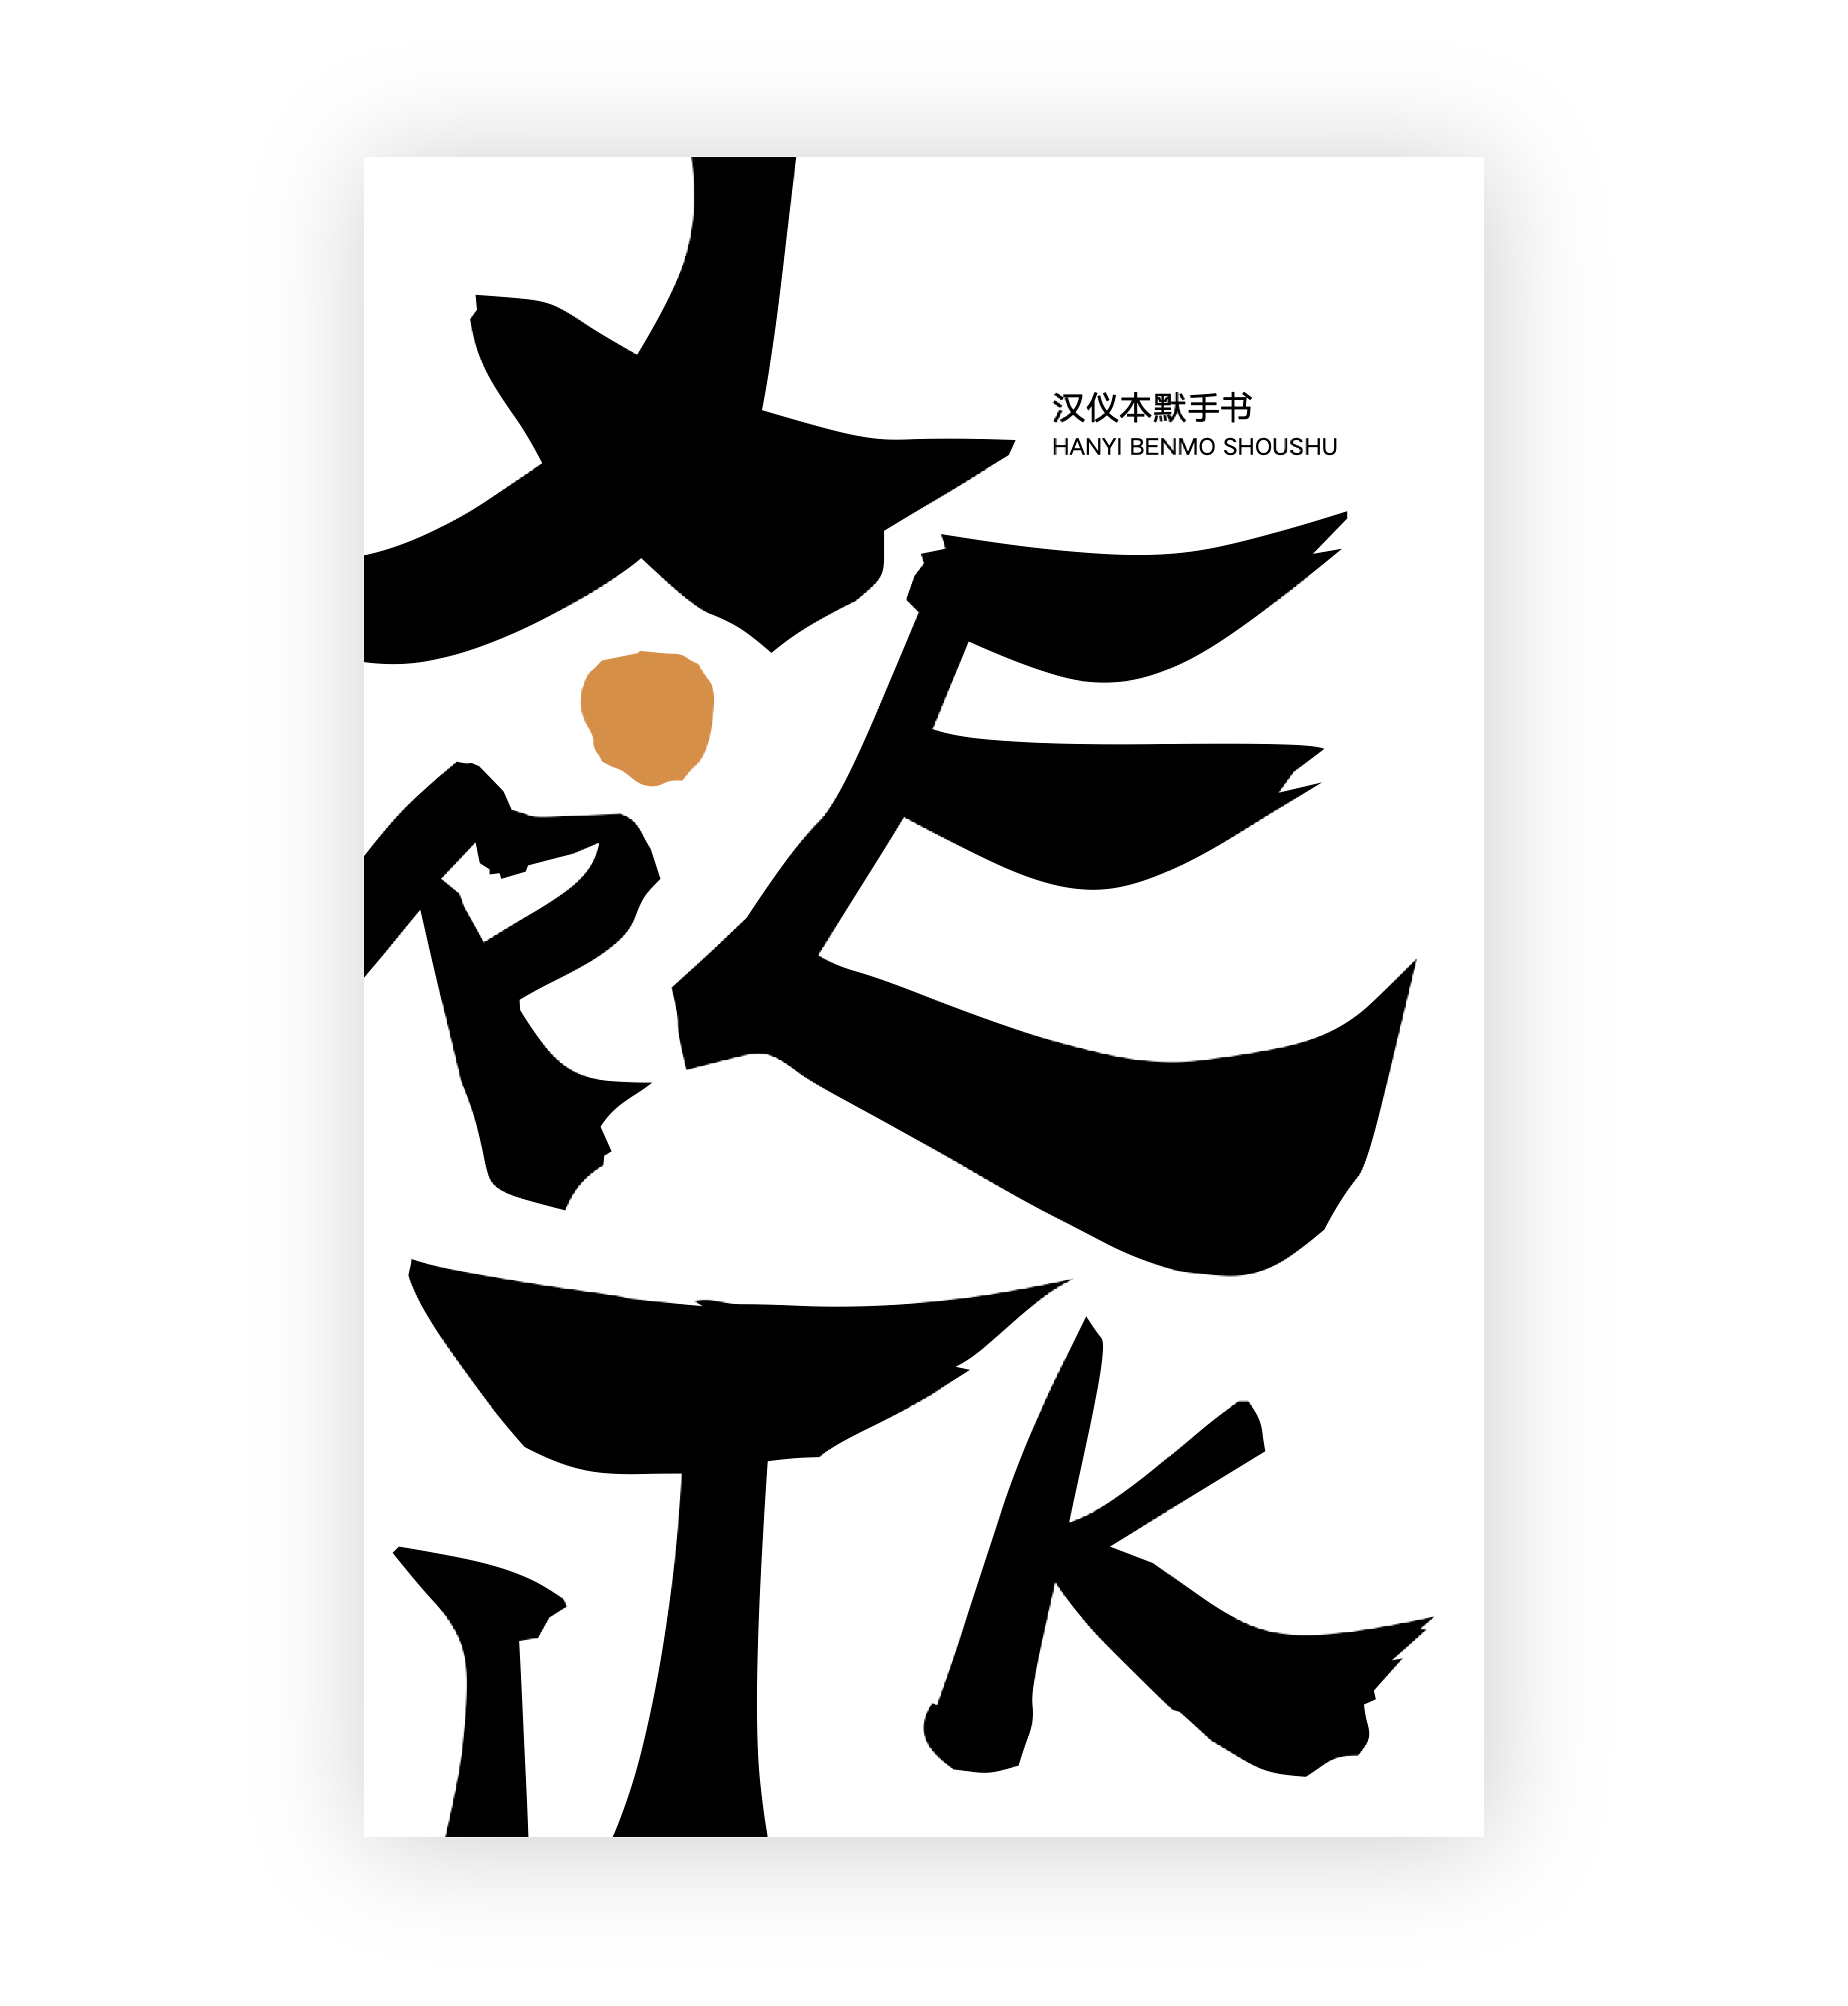 25P Collection of the latest Chinese font design schemes in 2021 #.5